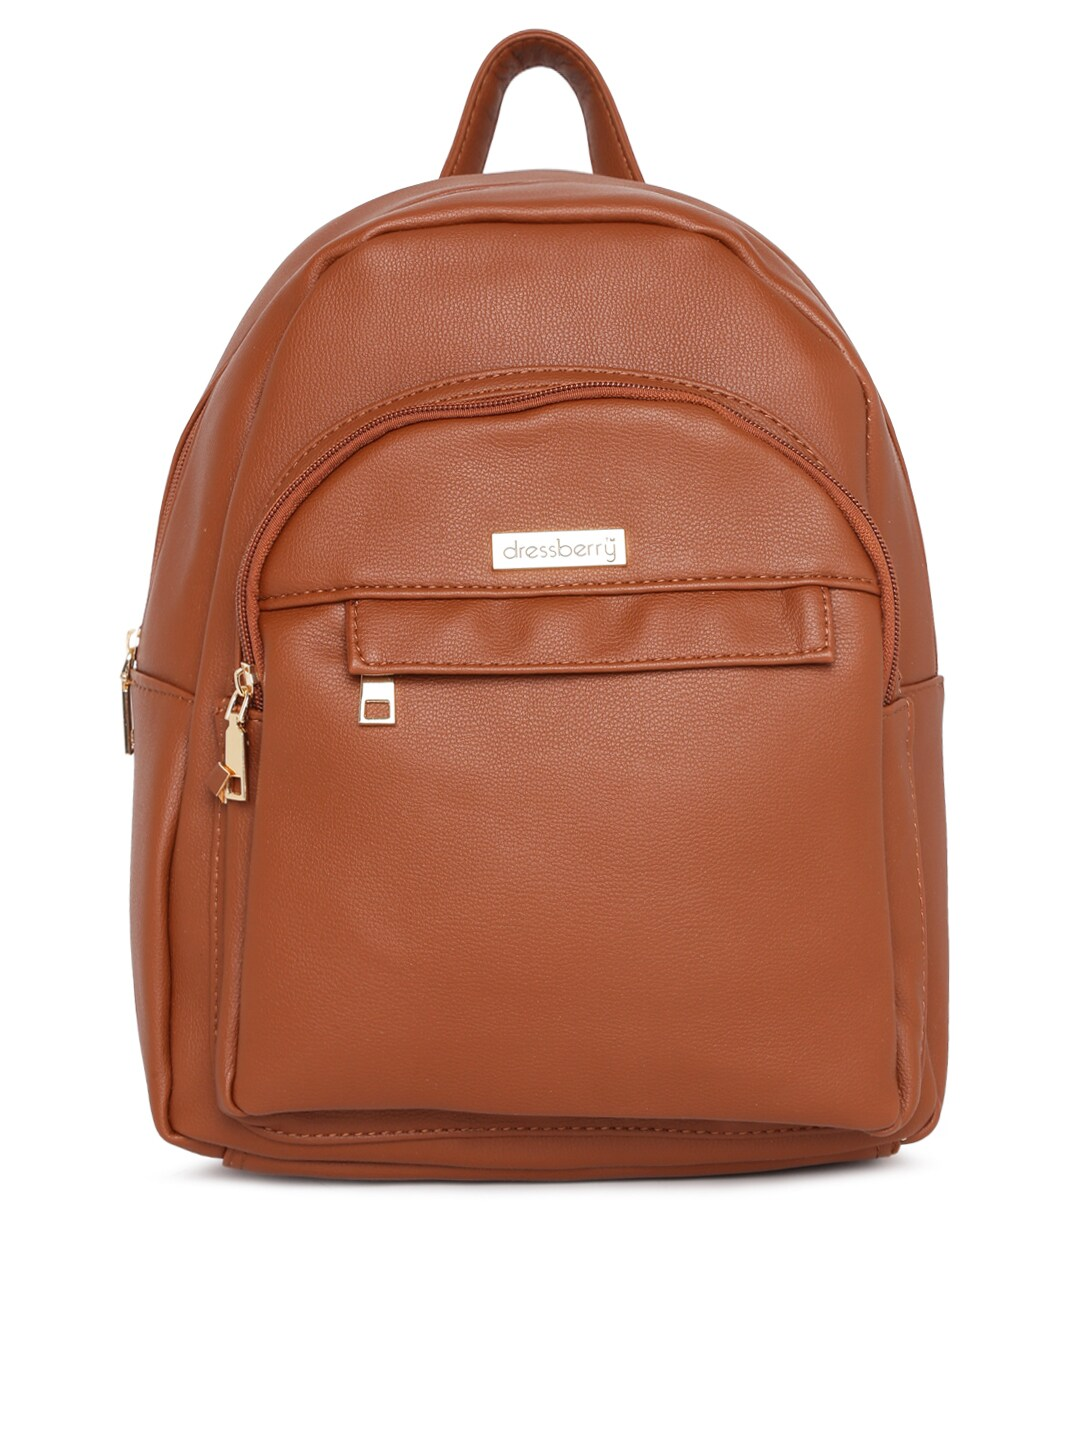 fac4016e928 DressBerry Women Tan Solid Backpack